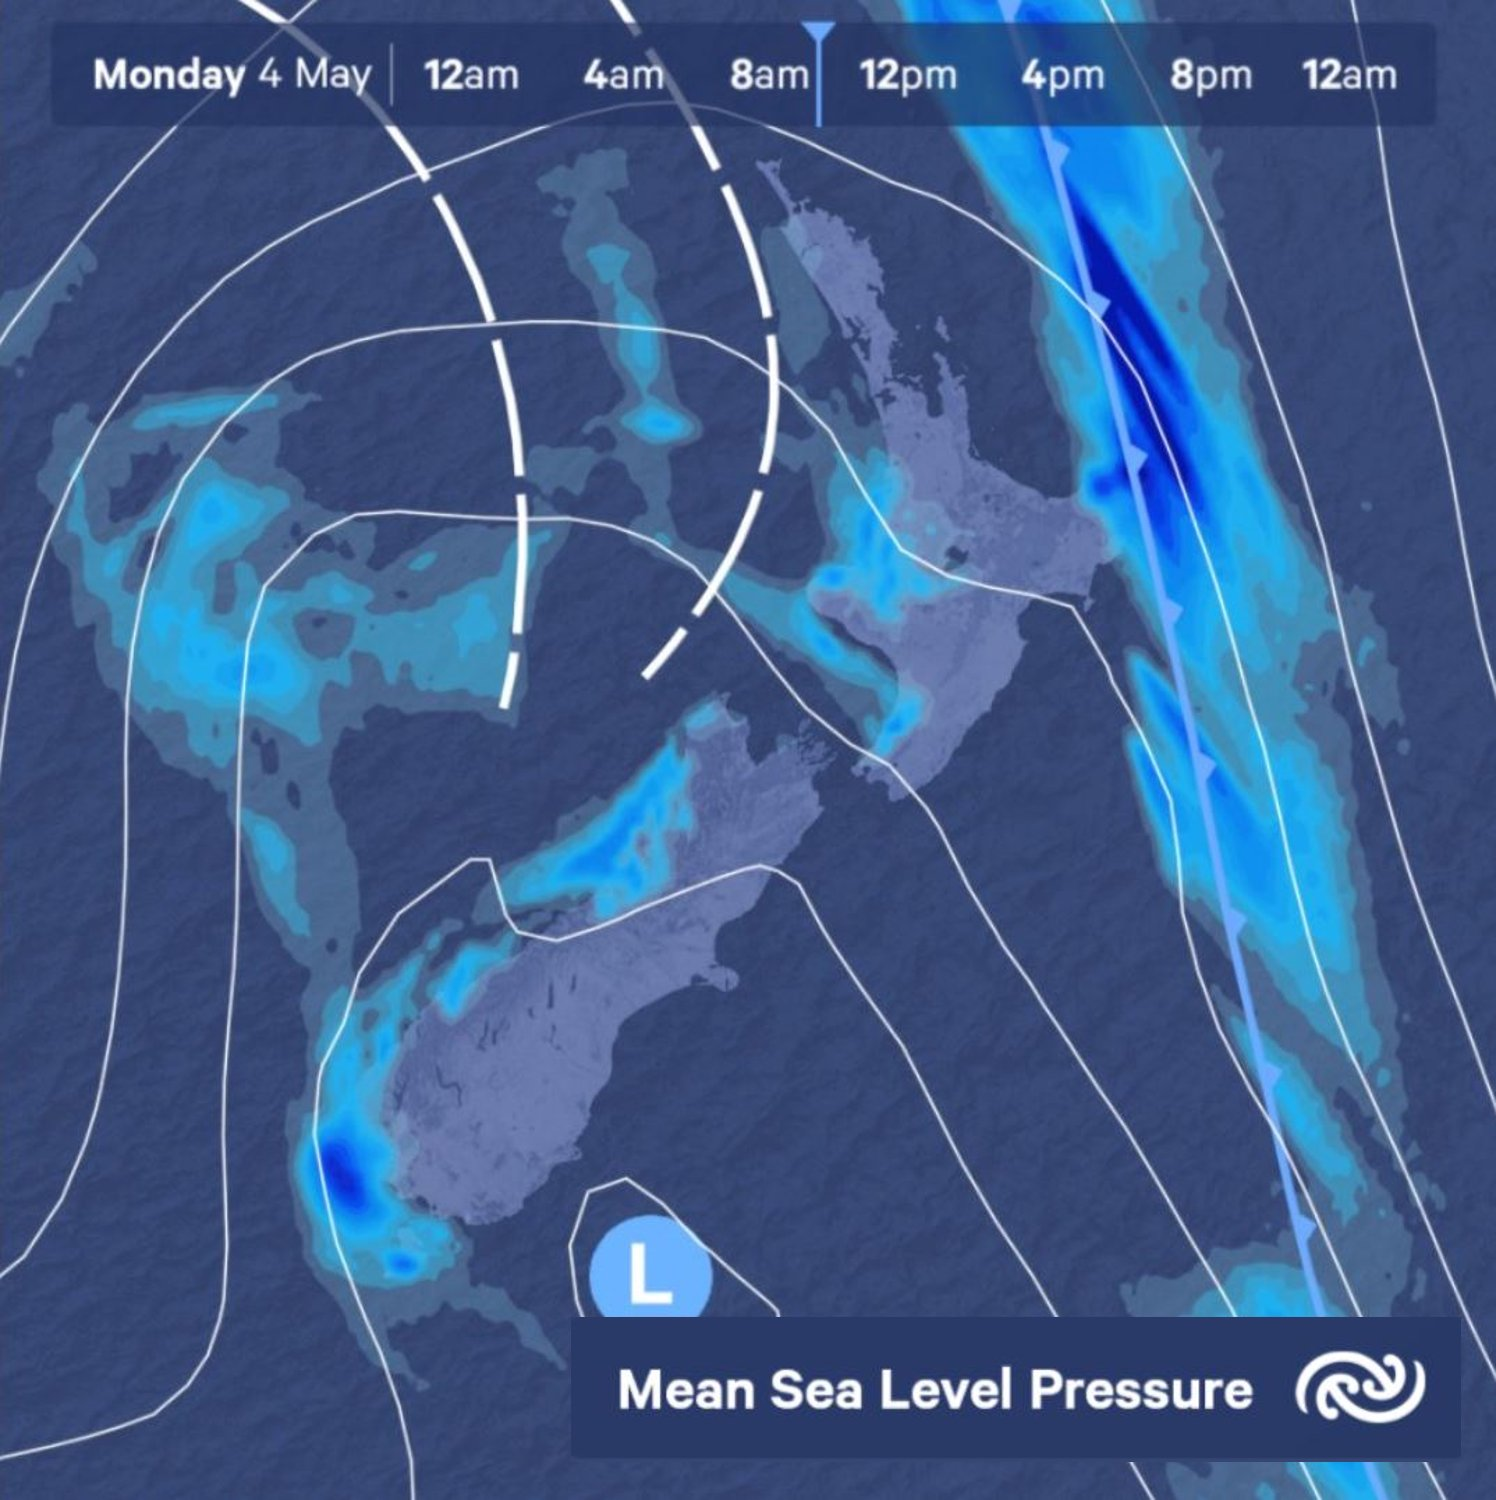 By late morning tomorrow the front that has driven a lot of the strong winds today will be gone, but several troughs in behind will keep the rain going tomorrow, especially in the west ^TA https://t.co/PCdCew5oYs